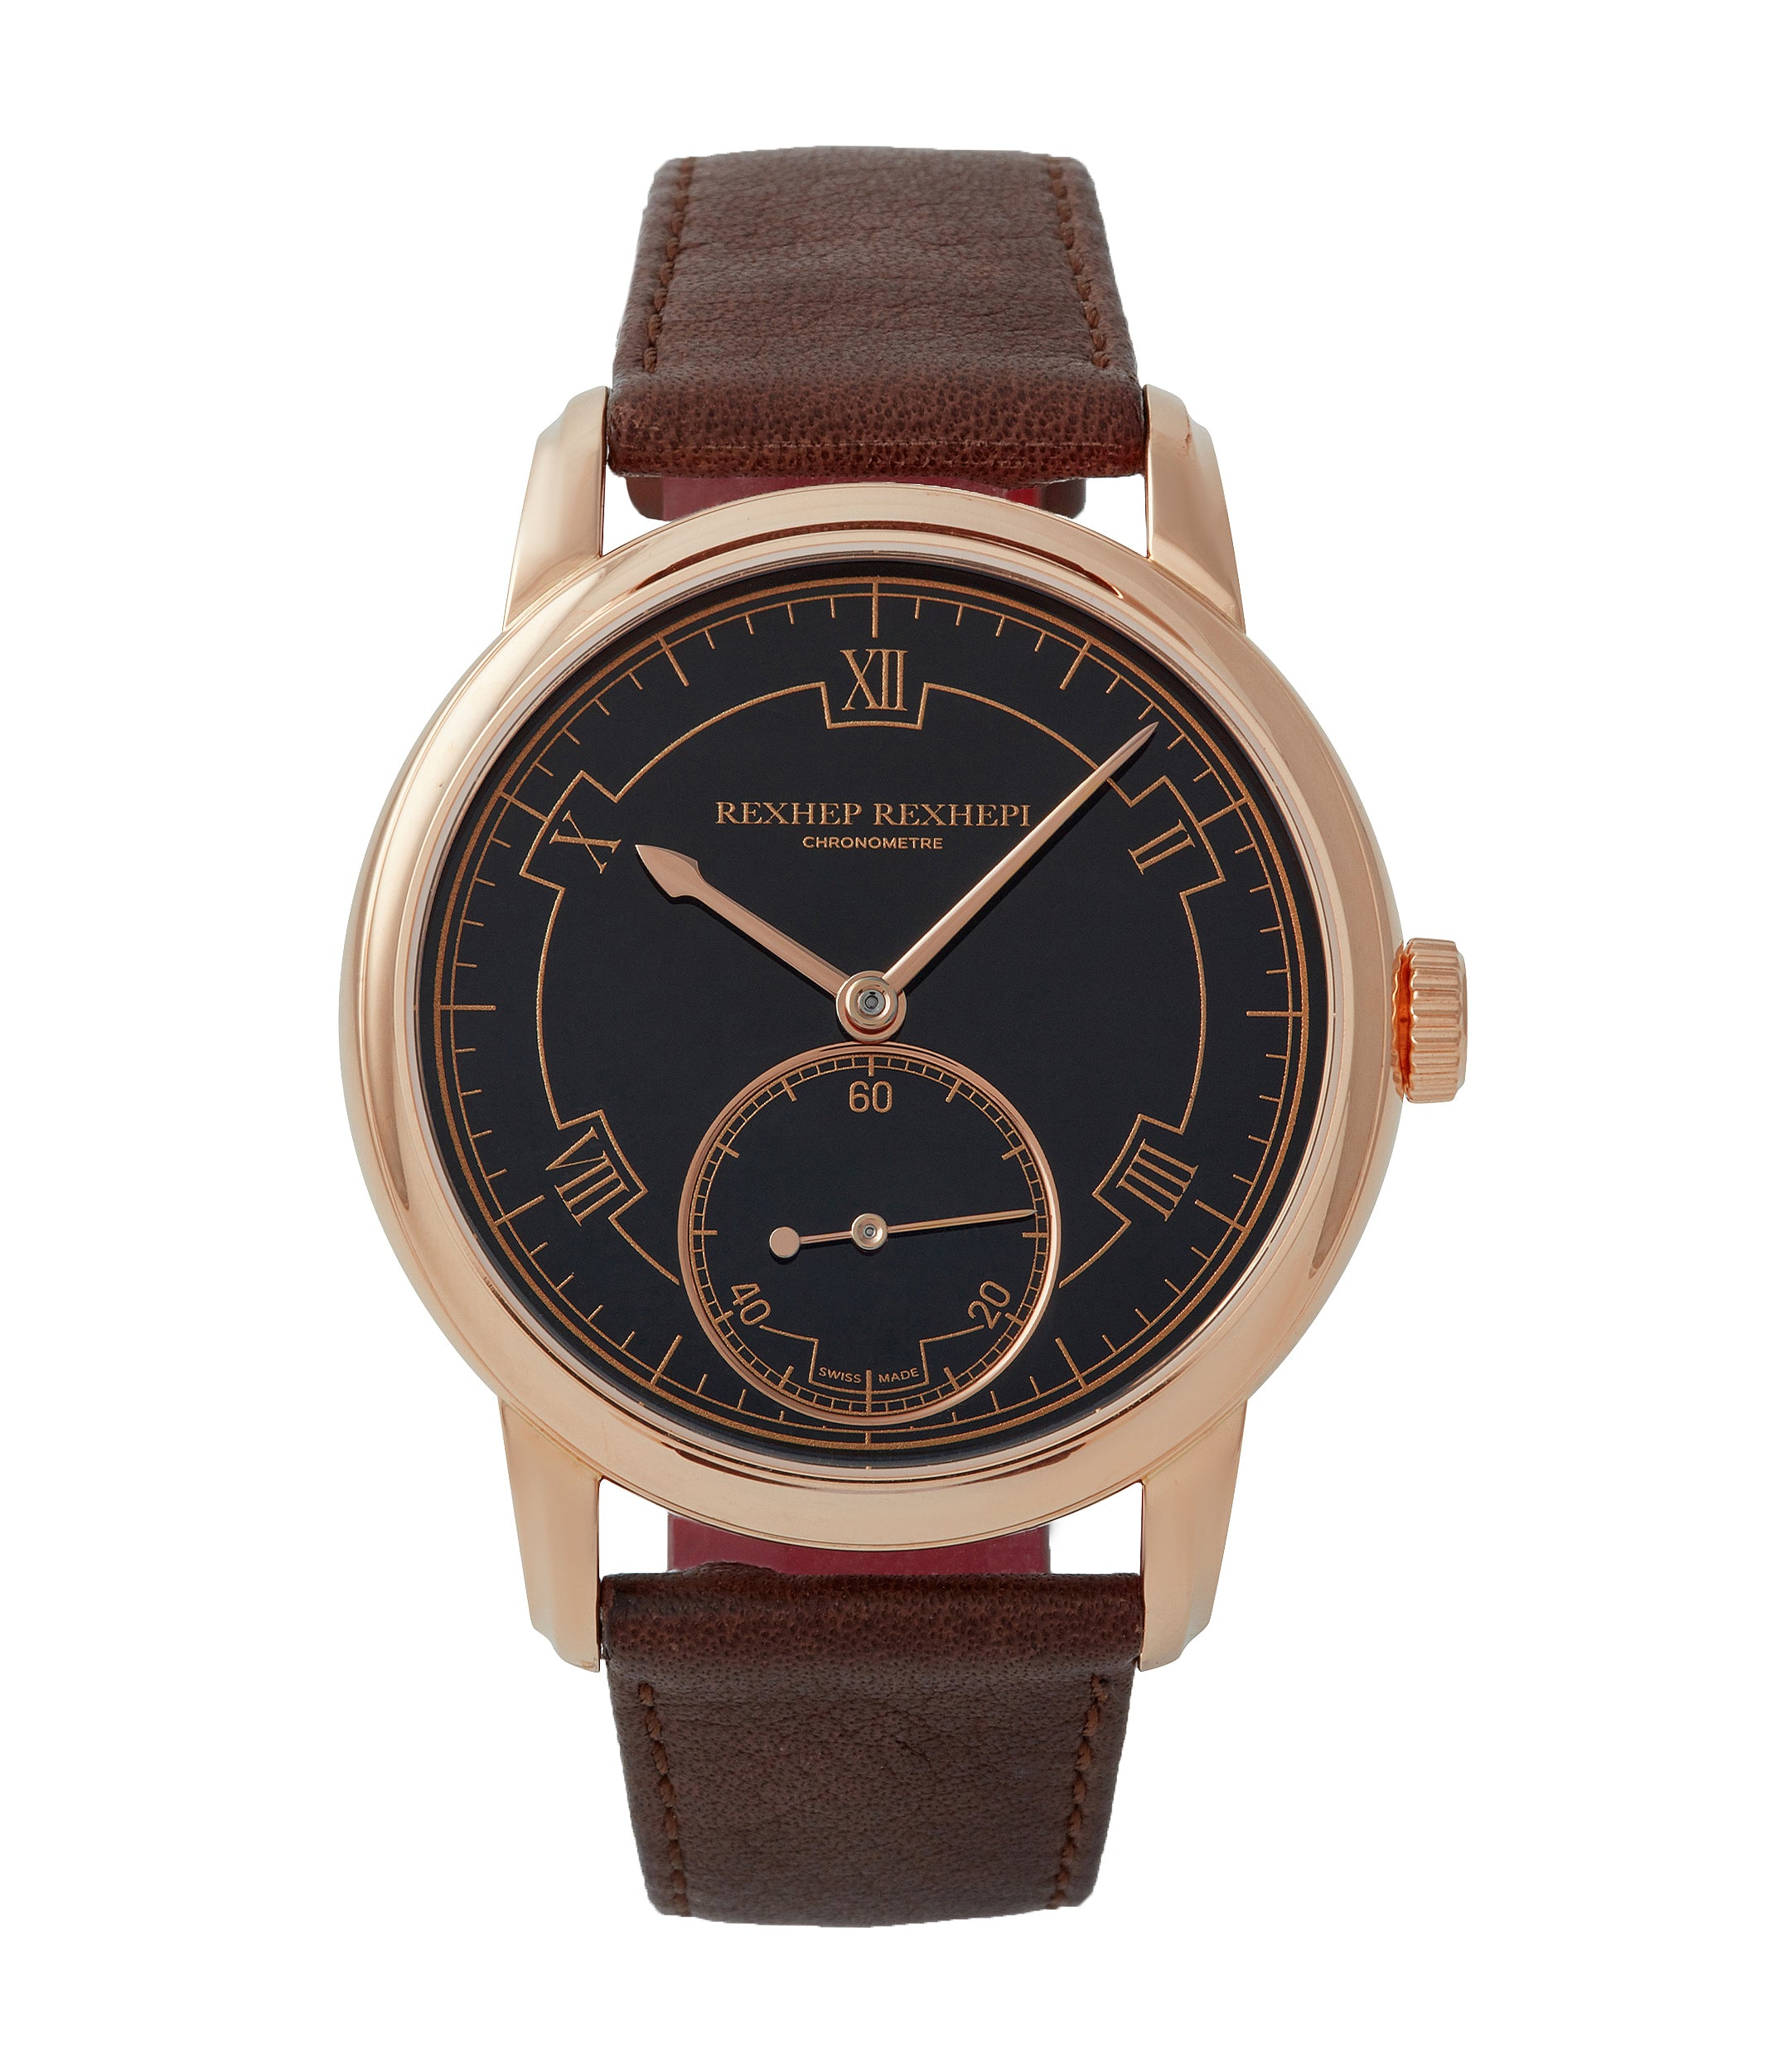 buying online AkriviA Rexhep Rexhepi Chronometre Contemporain rose gold black Grand Feu enamel sector dial time-only dress watch A Collected Man London